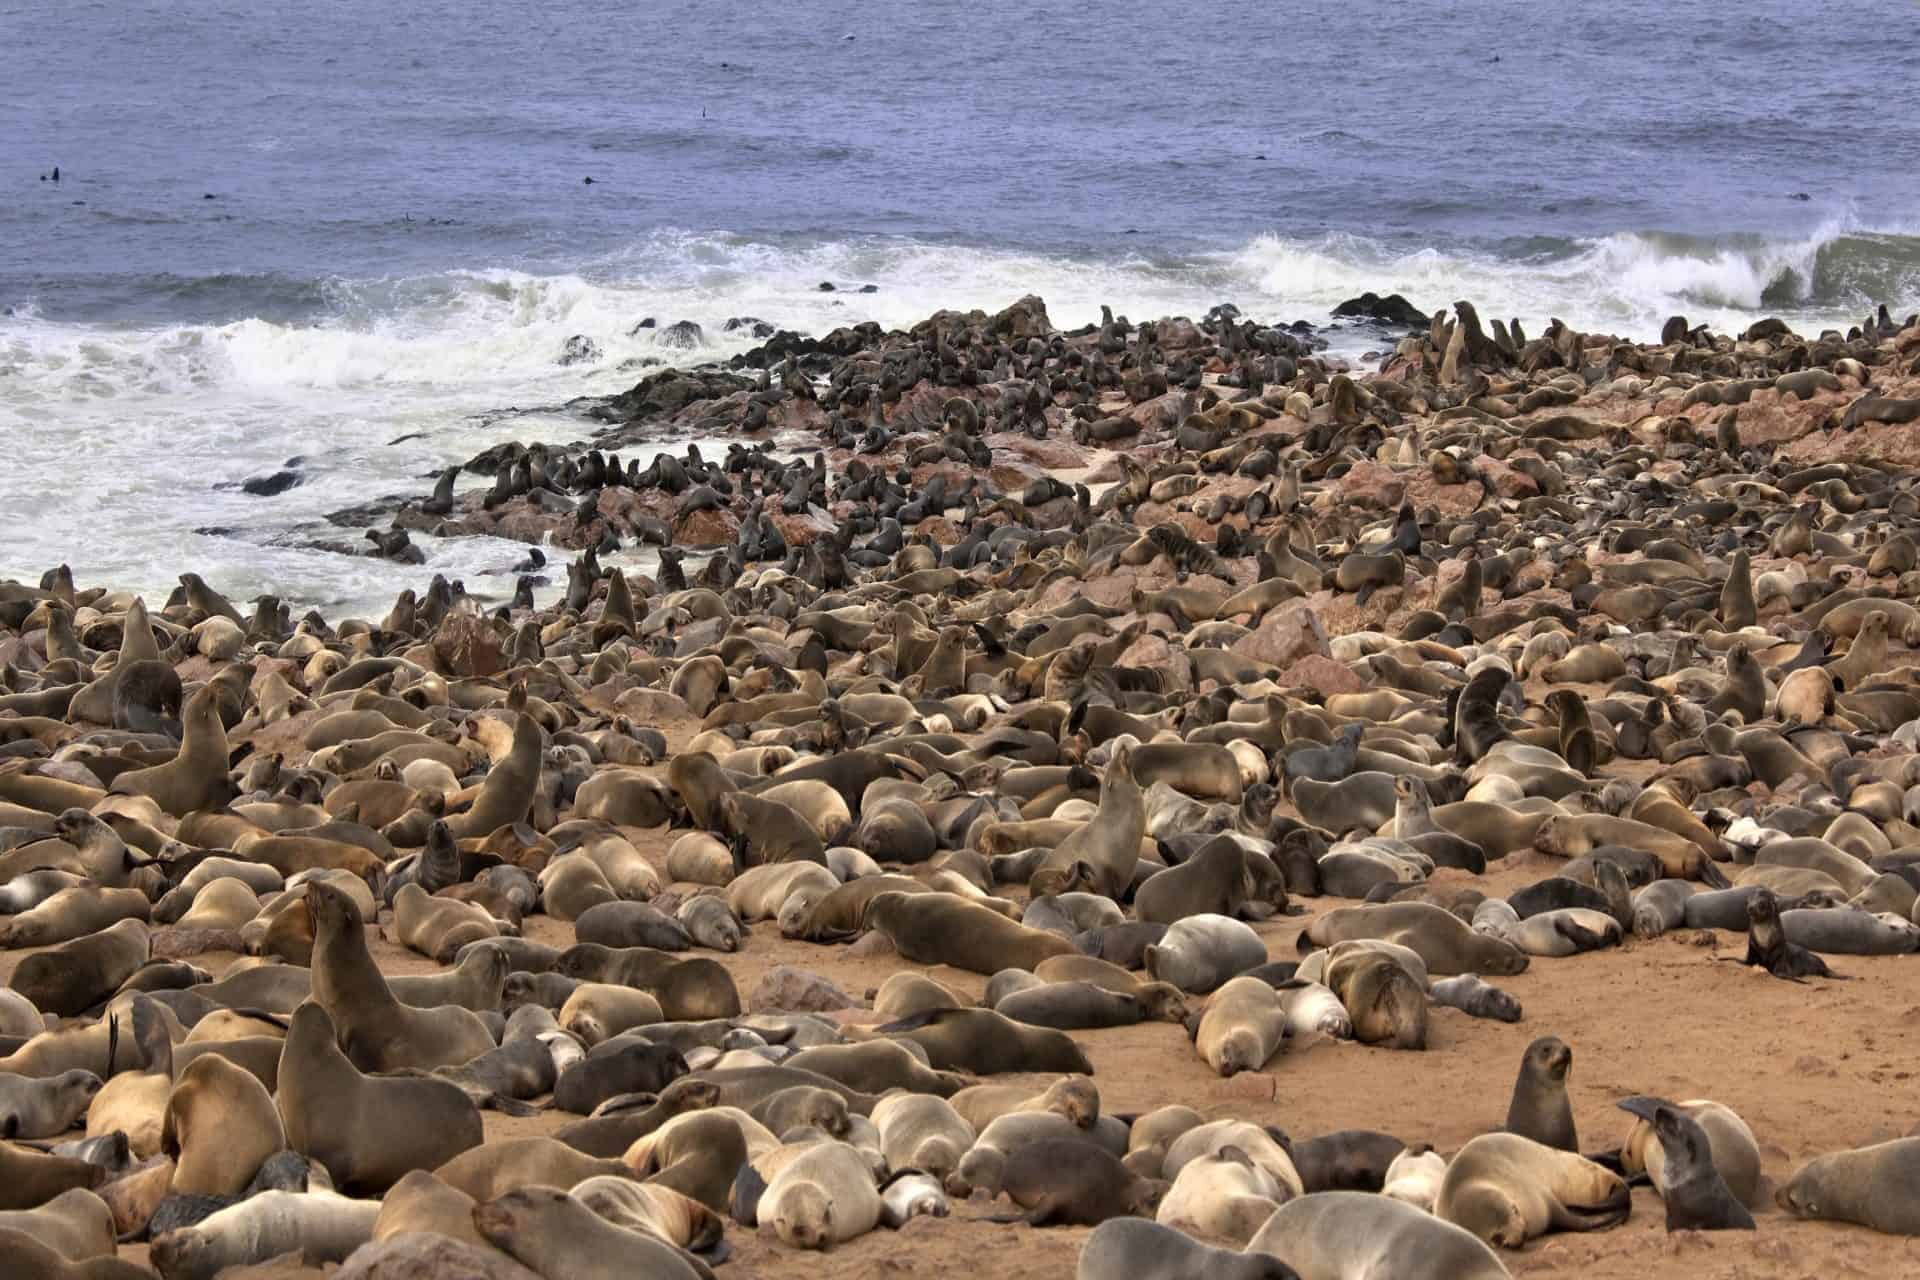 Cape Fur Seals (Arctocephalus pusillus) at Cape Cross Seal Colony on the Skeleton Coast in Namibia